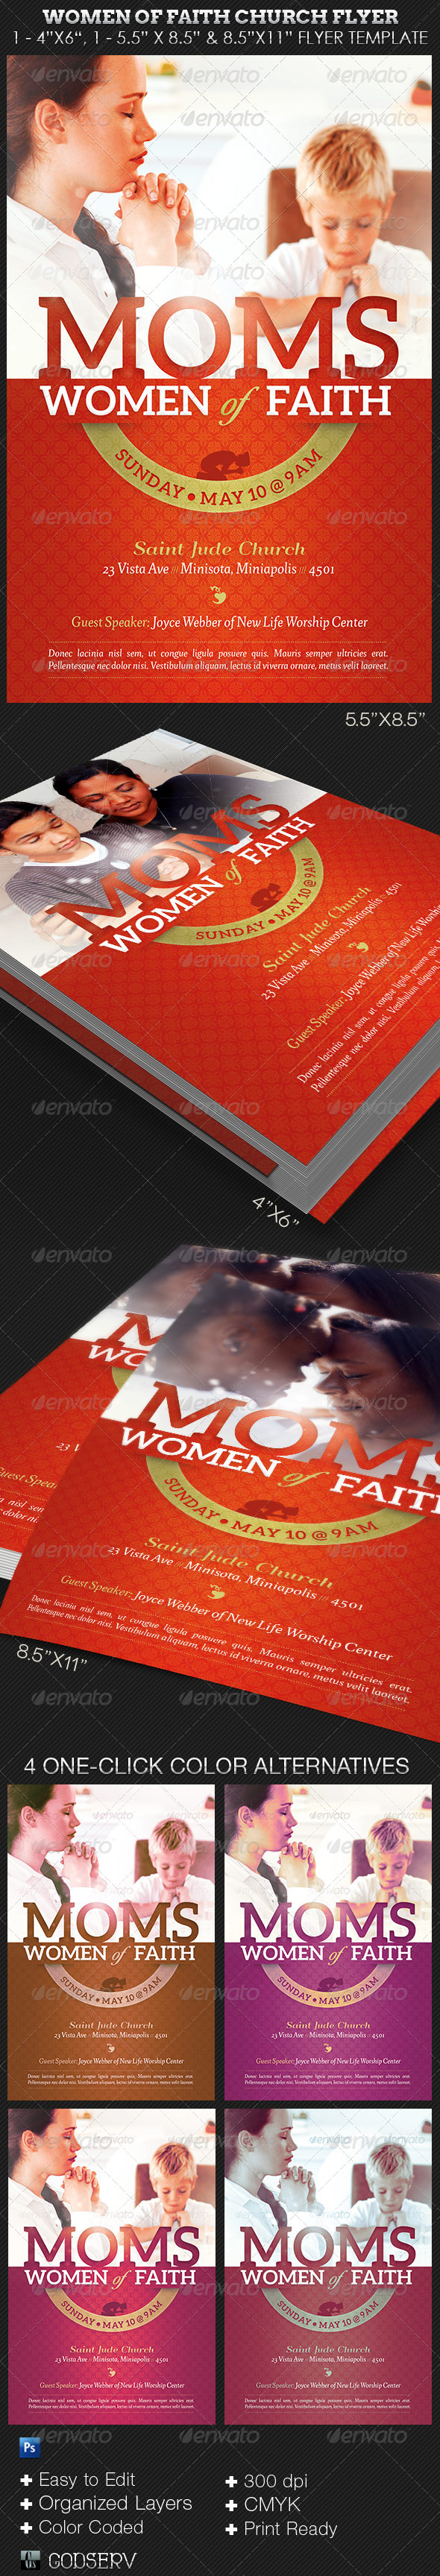 GraphicRiver Women of Faith Church Flyer Photoshop Template 8329850